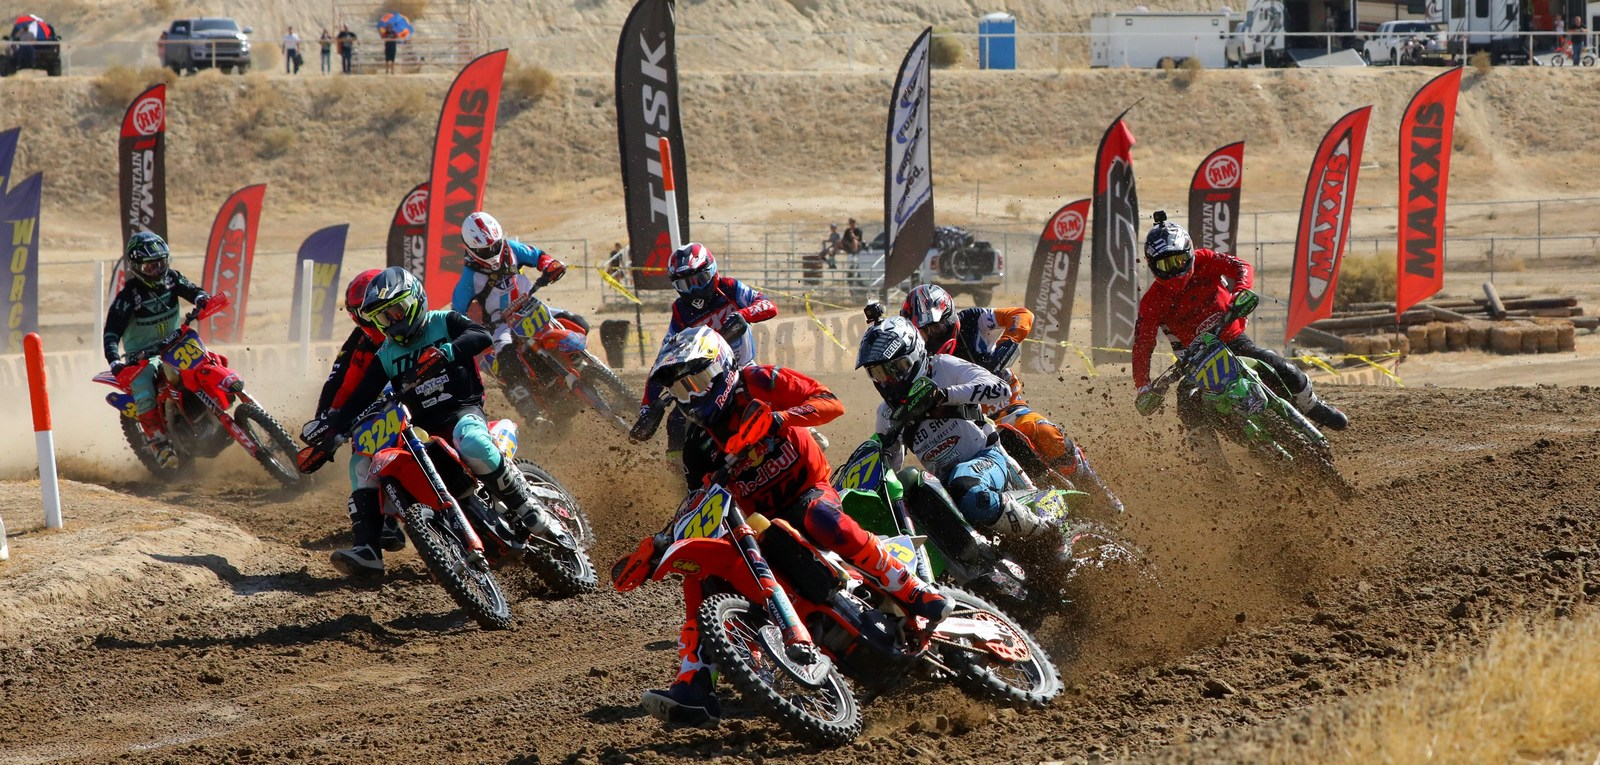 2019-10-taylor-robert-holeshot-bike-worcs-racing